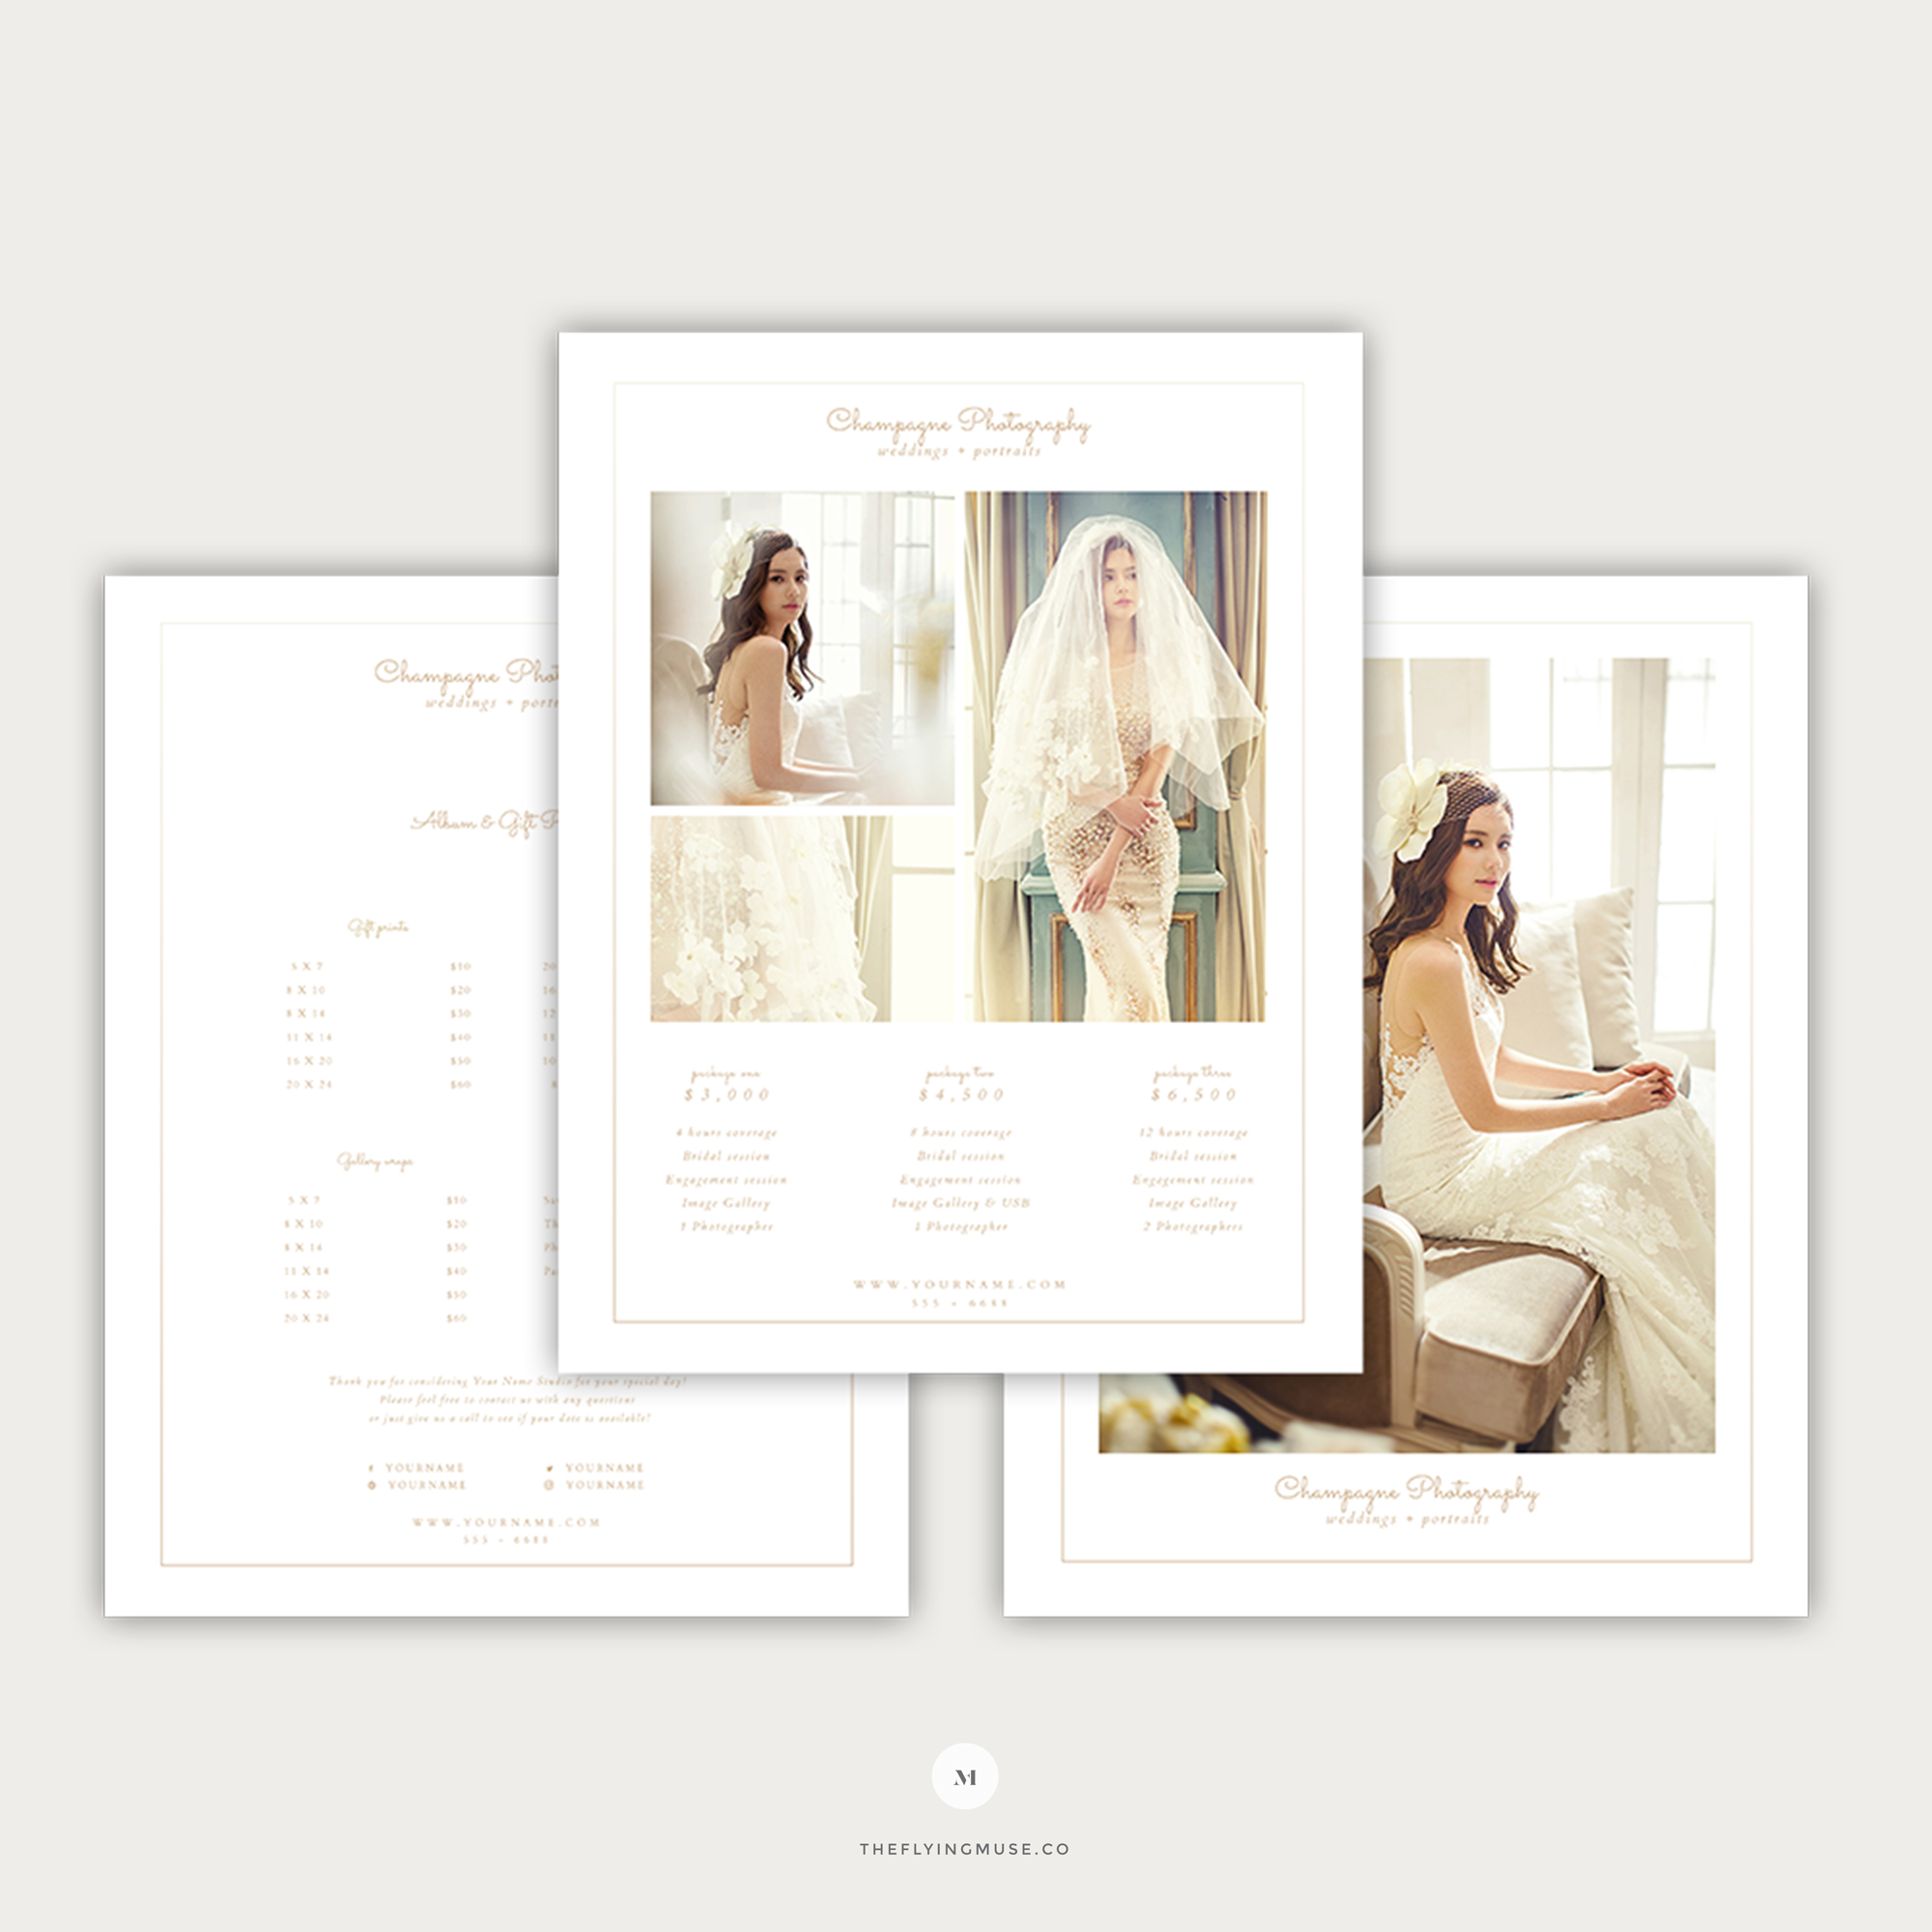 minimal wedding photography pricing guide template